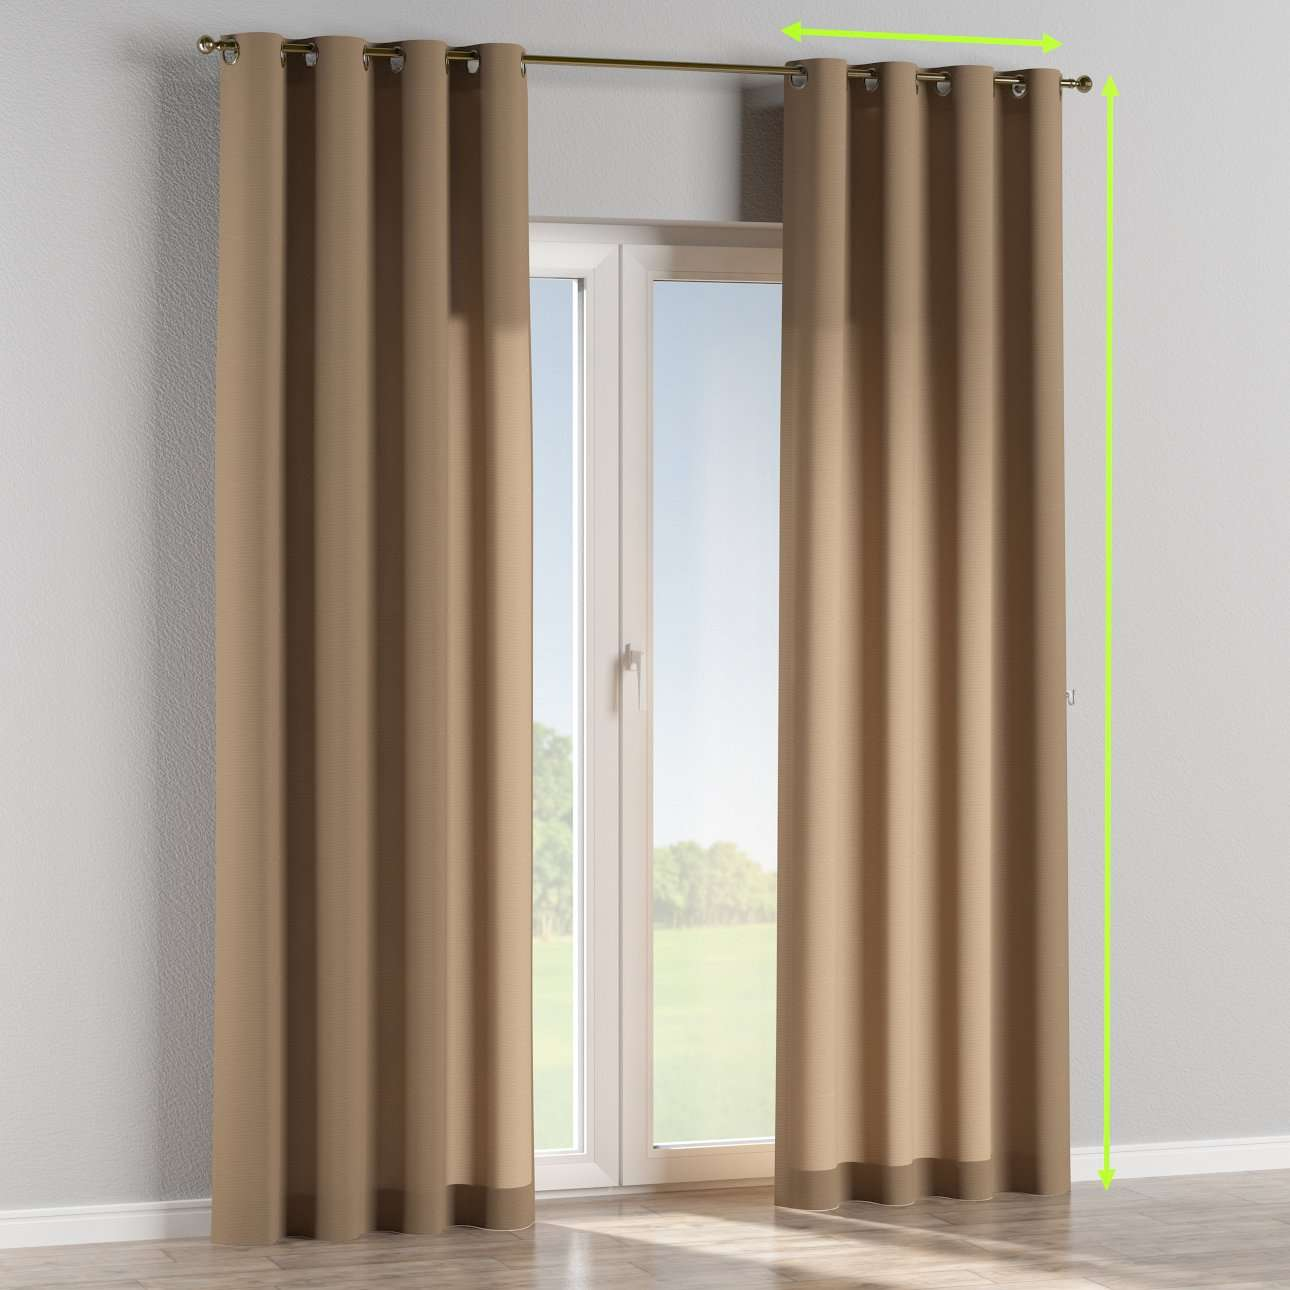 Eyelet curtains in collection Quadro, fabric: 136-09